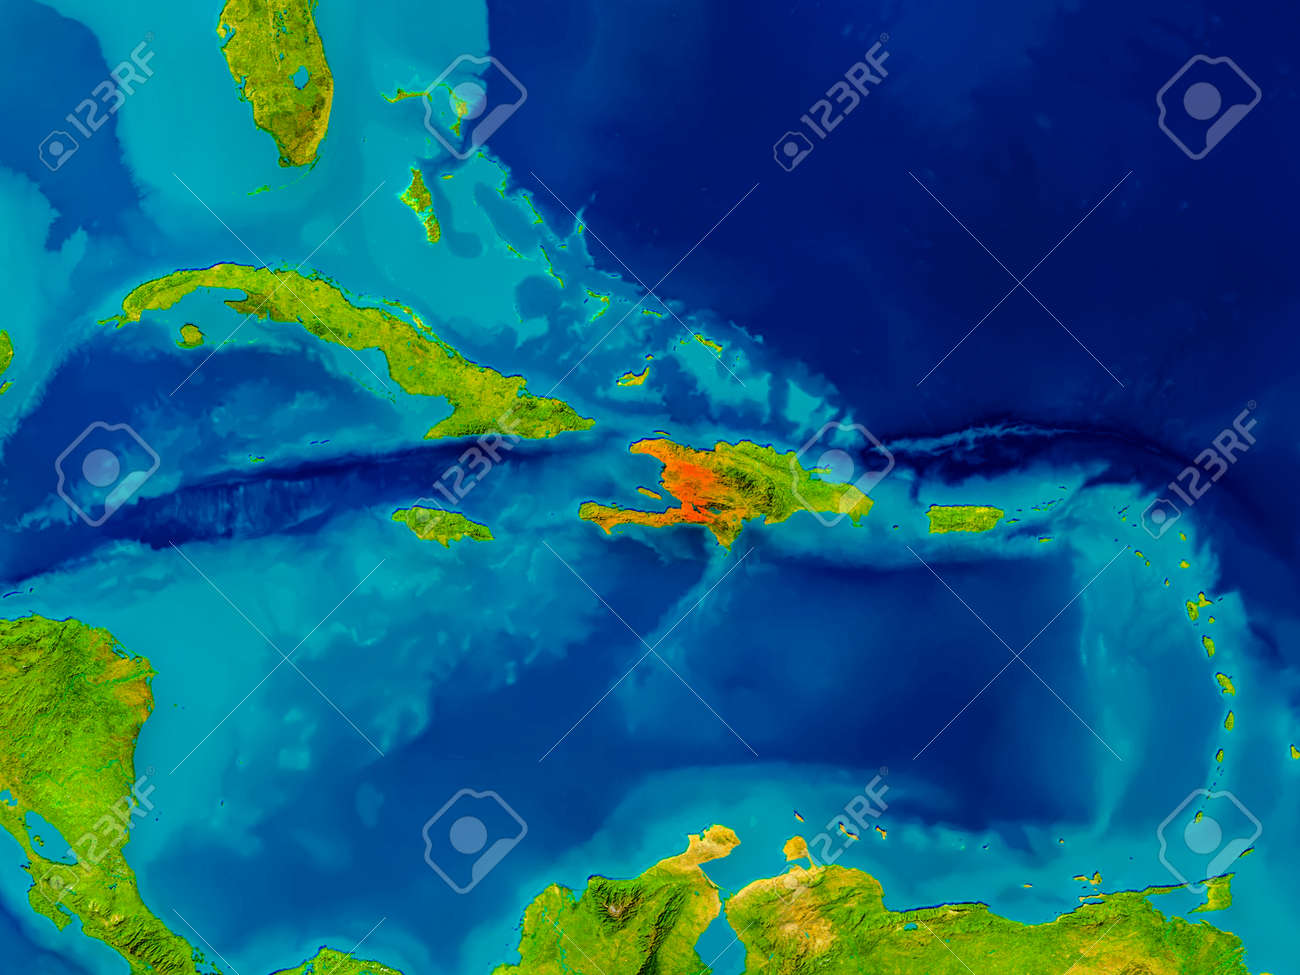 Haiti Highlighted In Red On Physical Map 3d Illustration Stock Photo Picture And Royalty Free Image Image 77614663